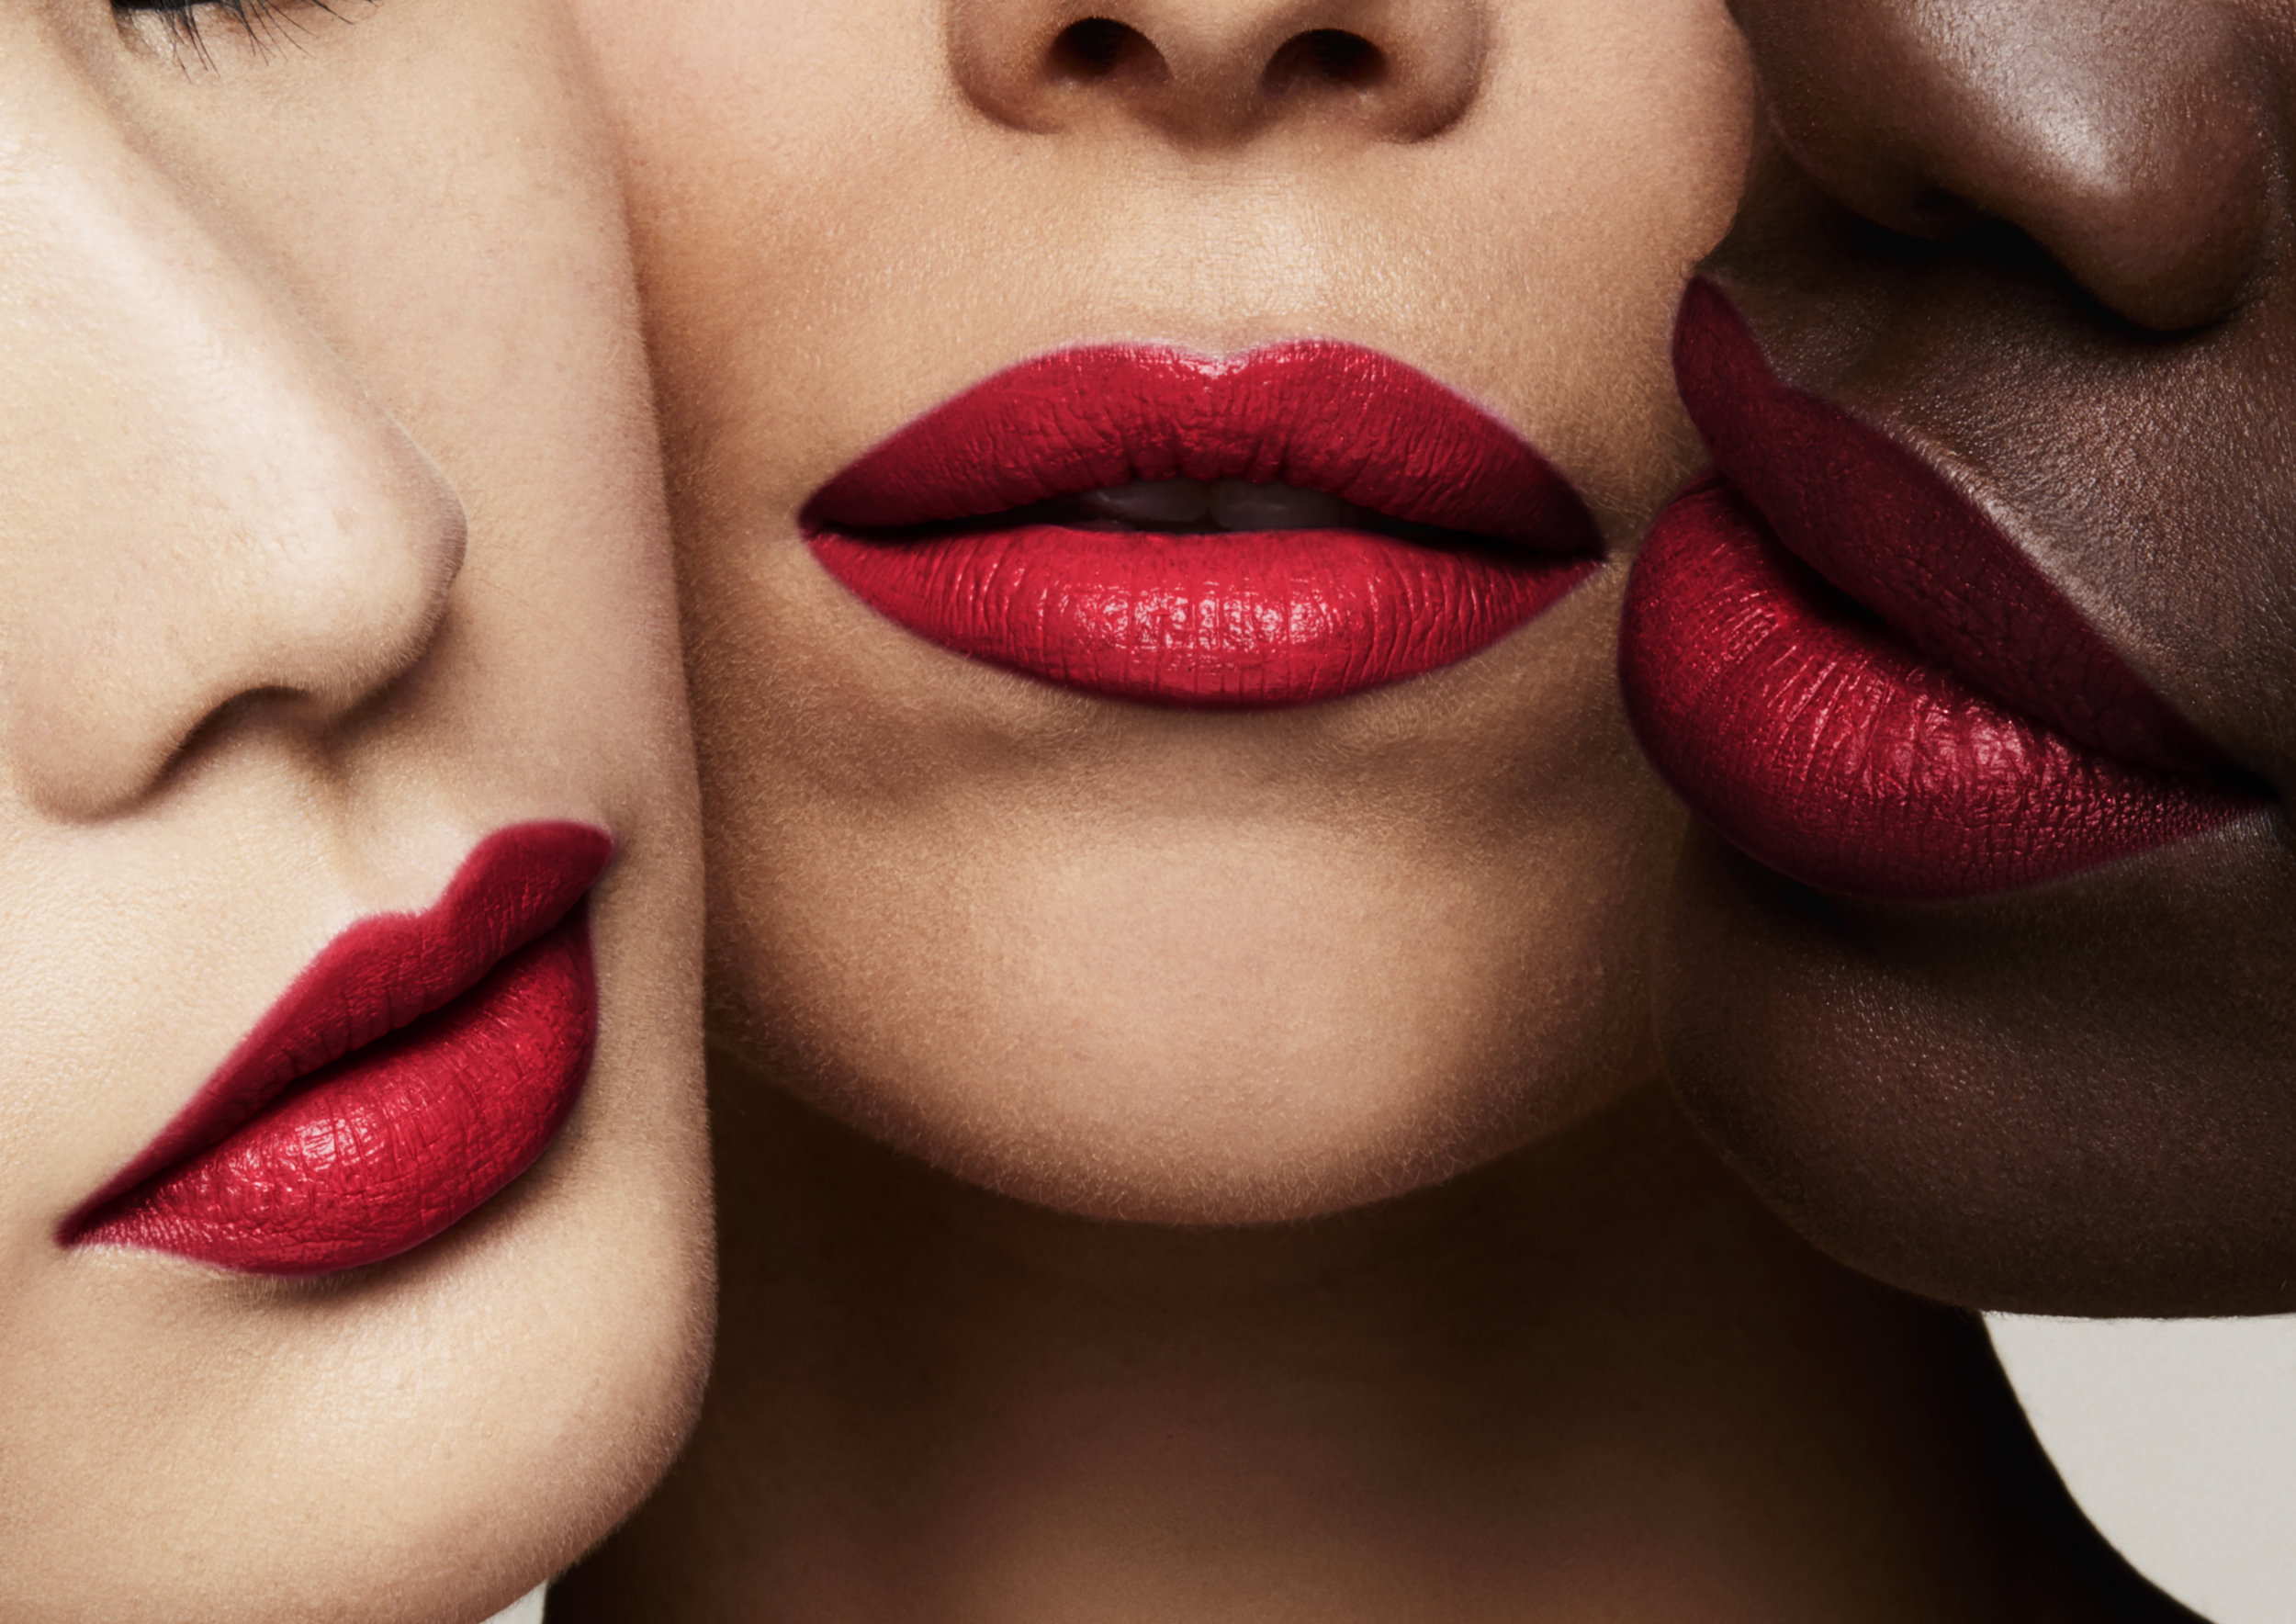 BeautyPhotography_TomFordBeauty_LipstickEditorial_By_BriJohnson_0003.jpg